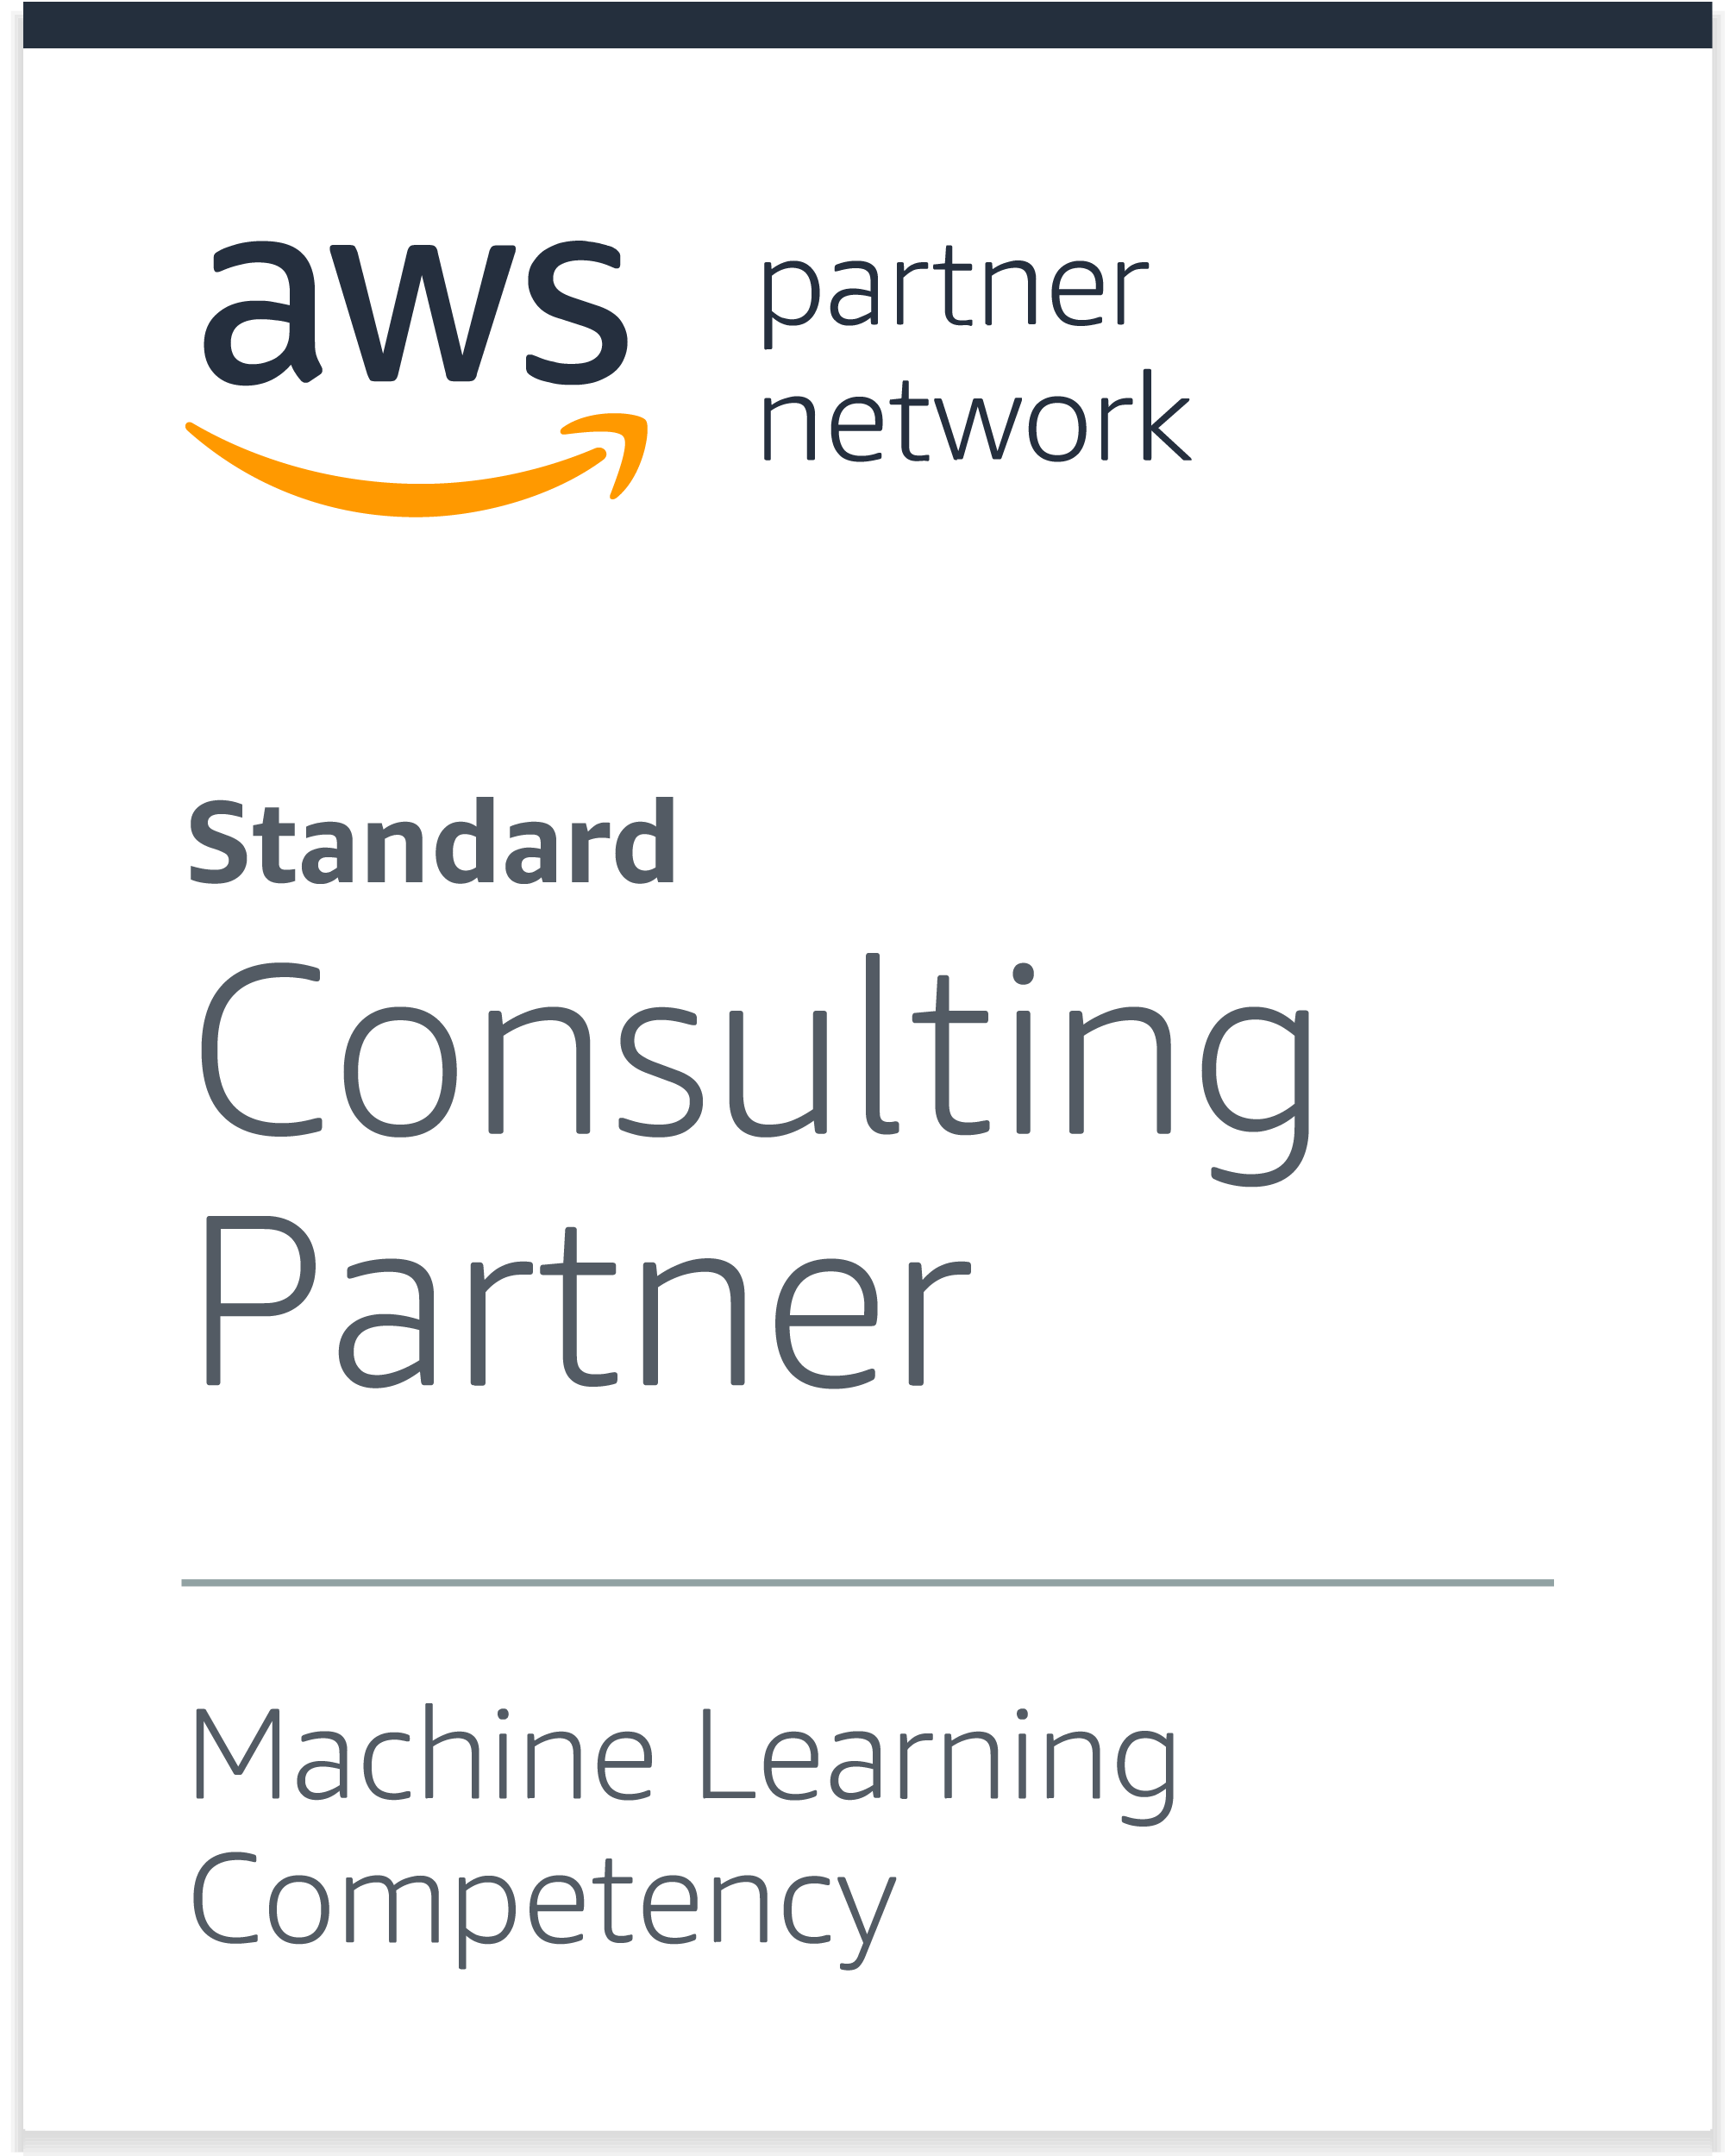 AWS consulting partner ML compentency